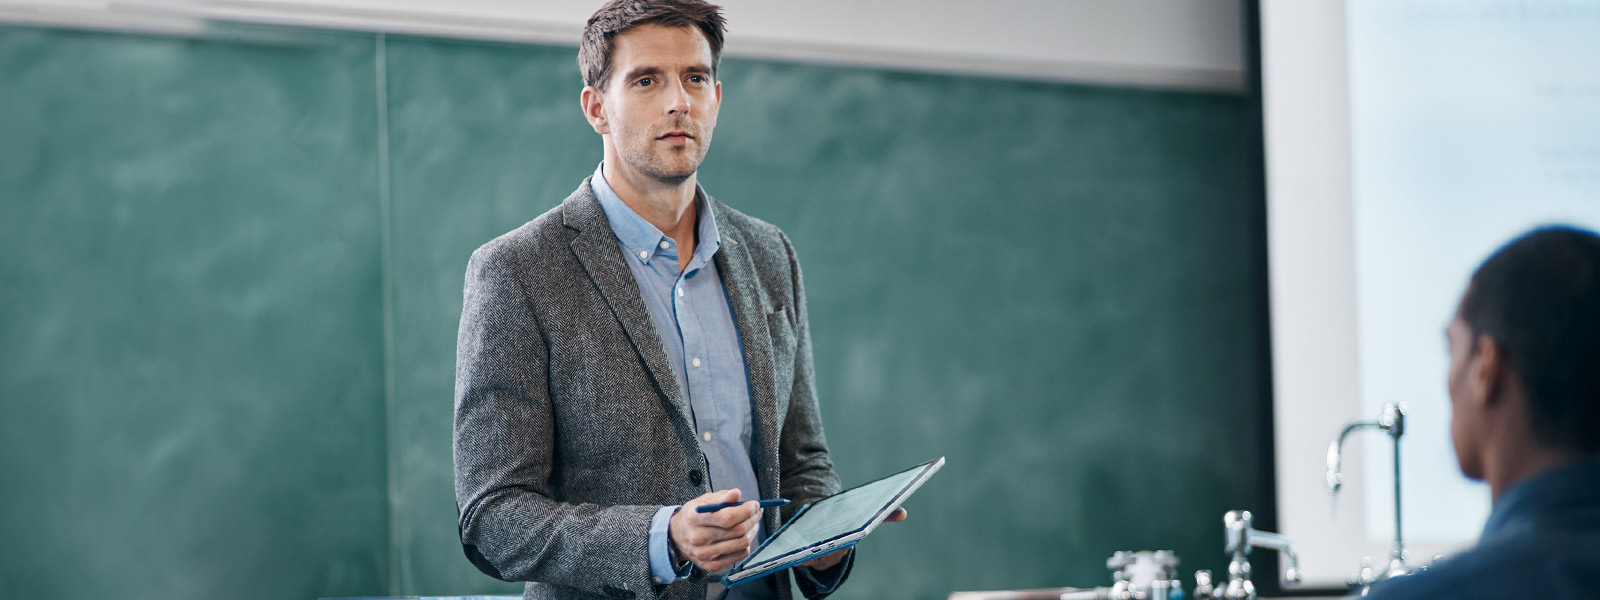 Teacher uses Surface Pro 4 in tablet mode as he lectures from front of classroom.